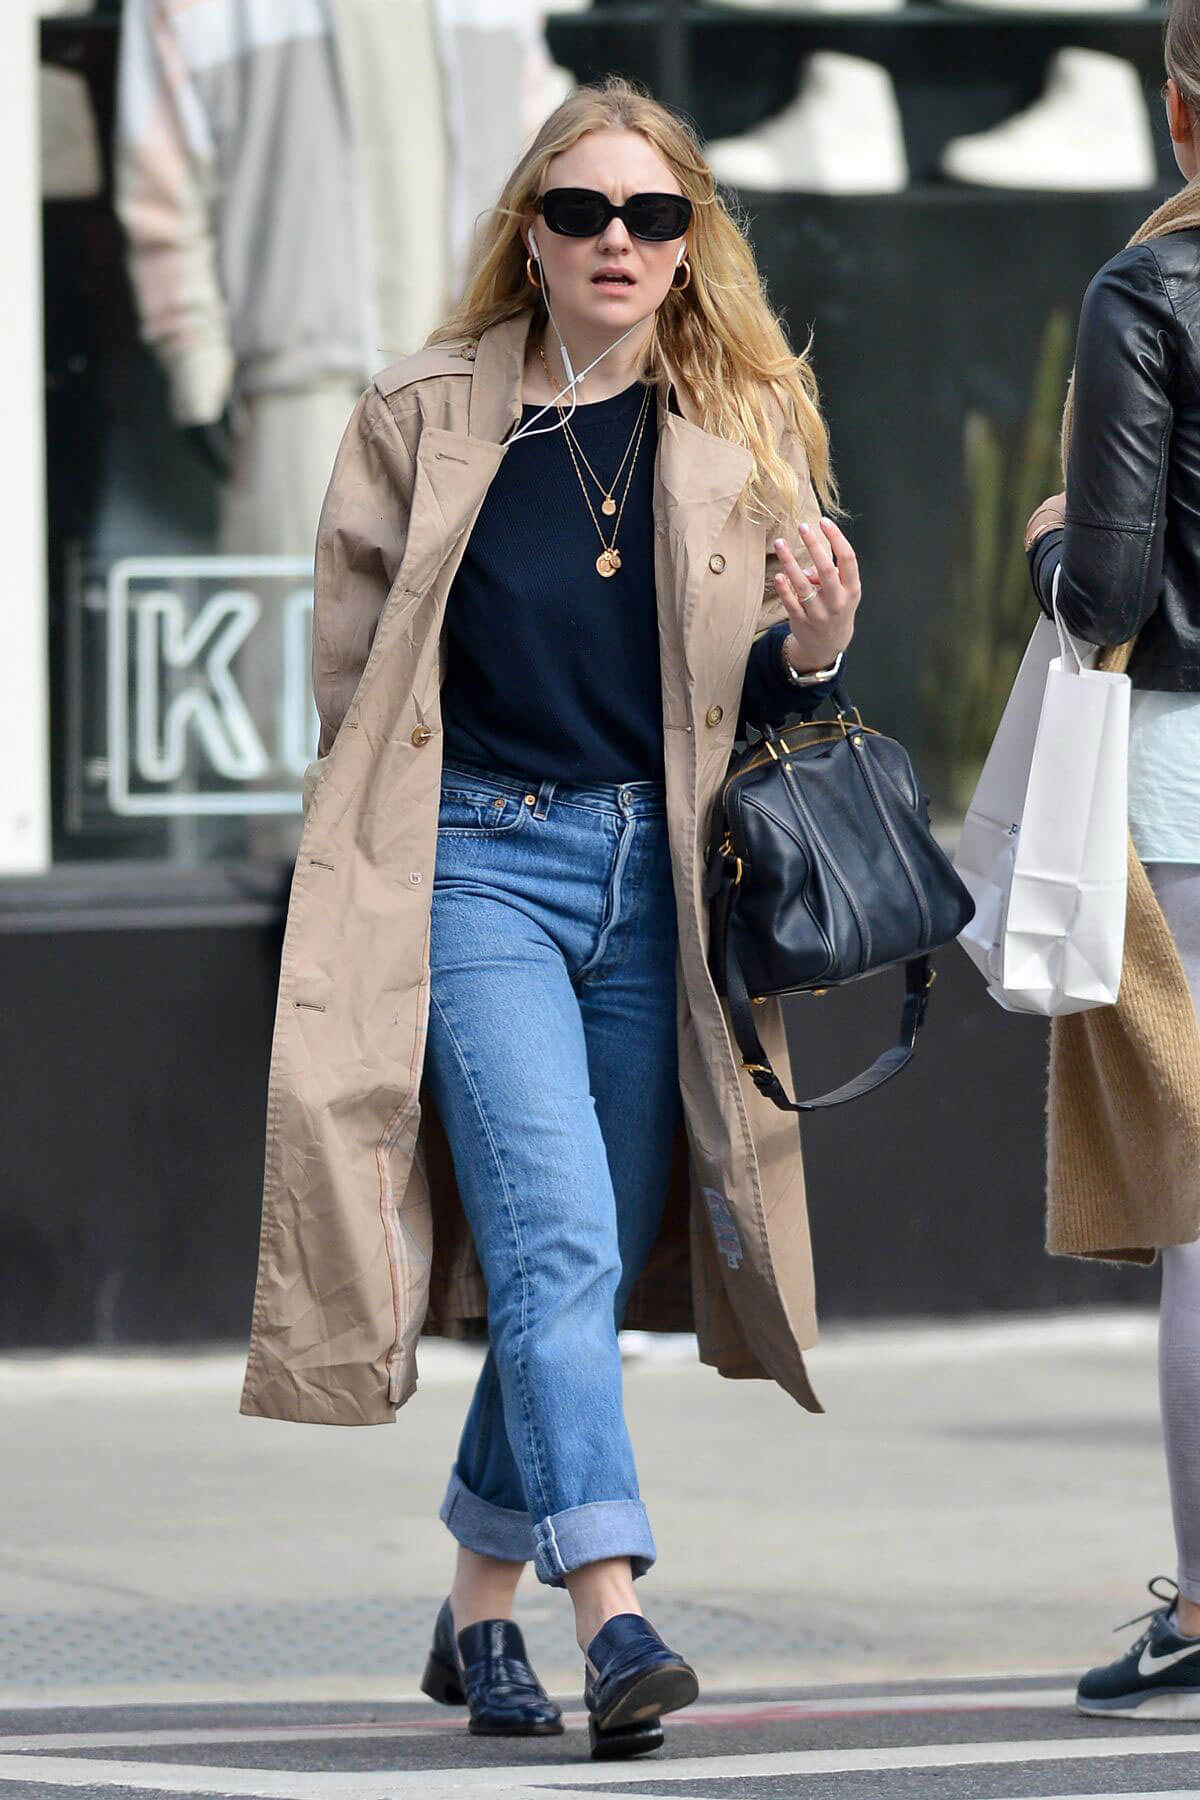 Dakota Fanning wears Long Winter Coat & Blue Jeans Out and About in New York